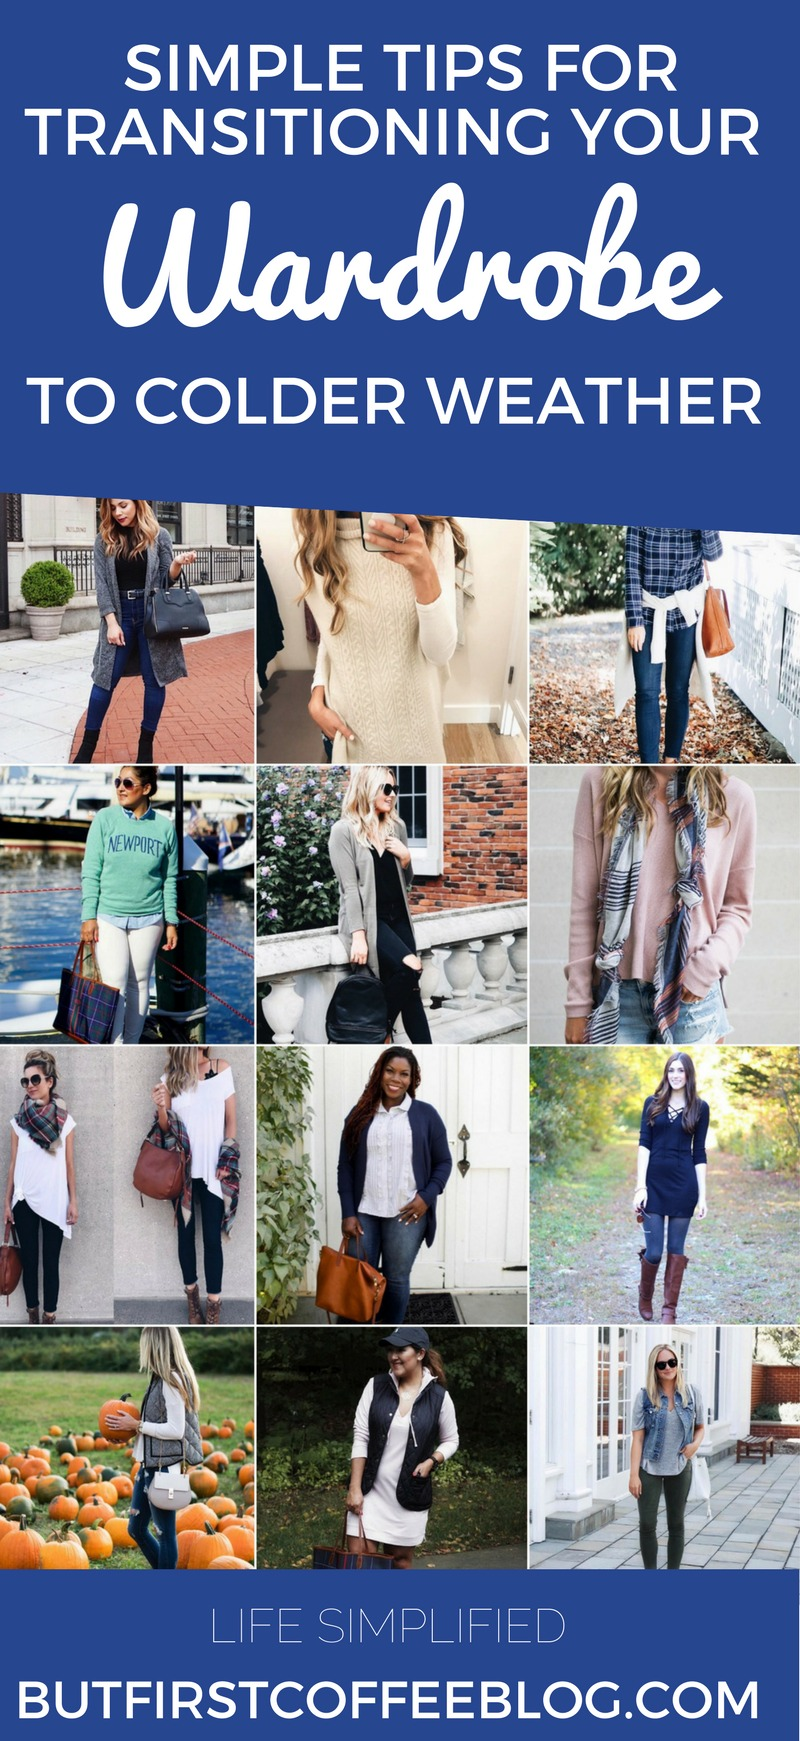 OUTFIT TRICKS FOR TRANSITIONING TO COLDER WEATHER